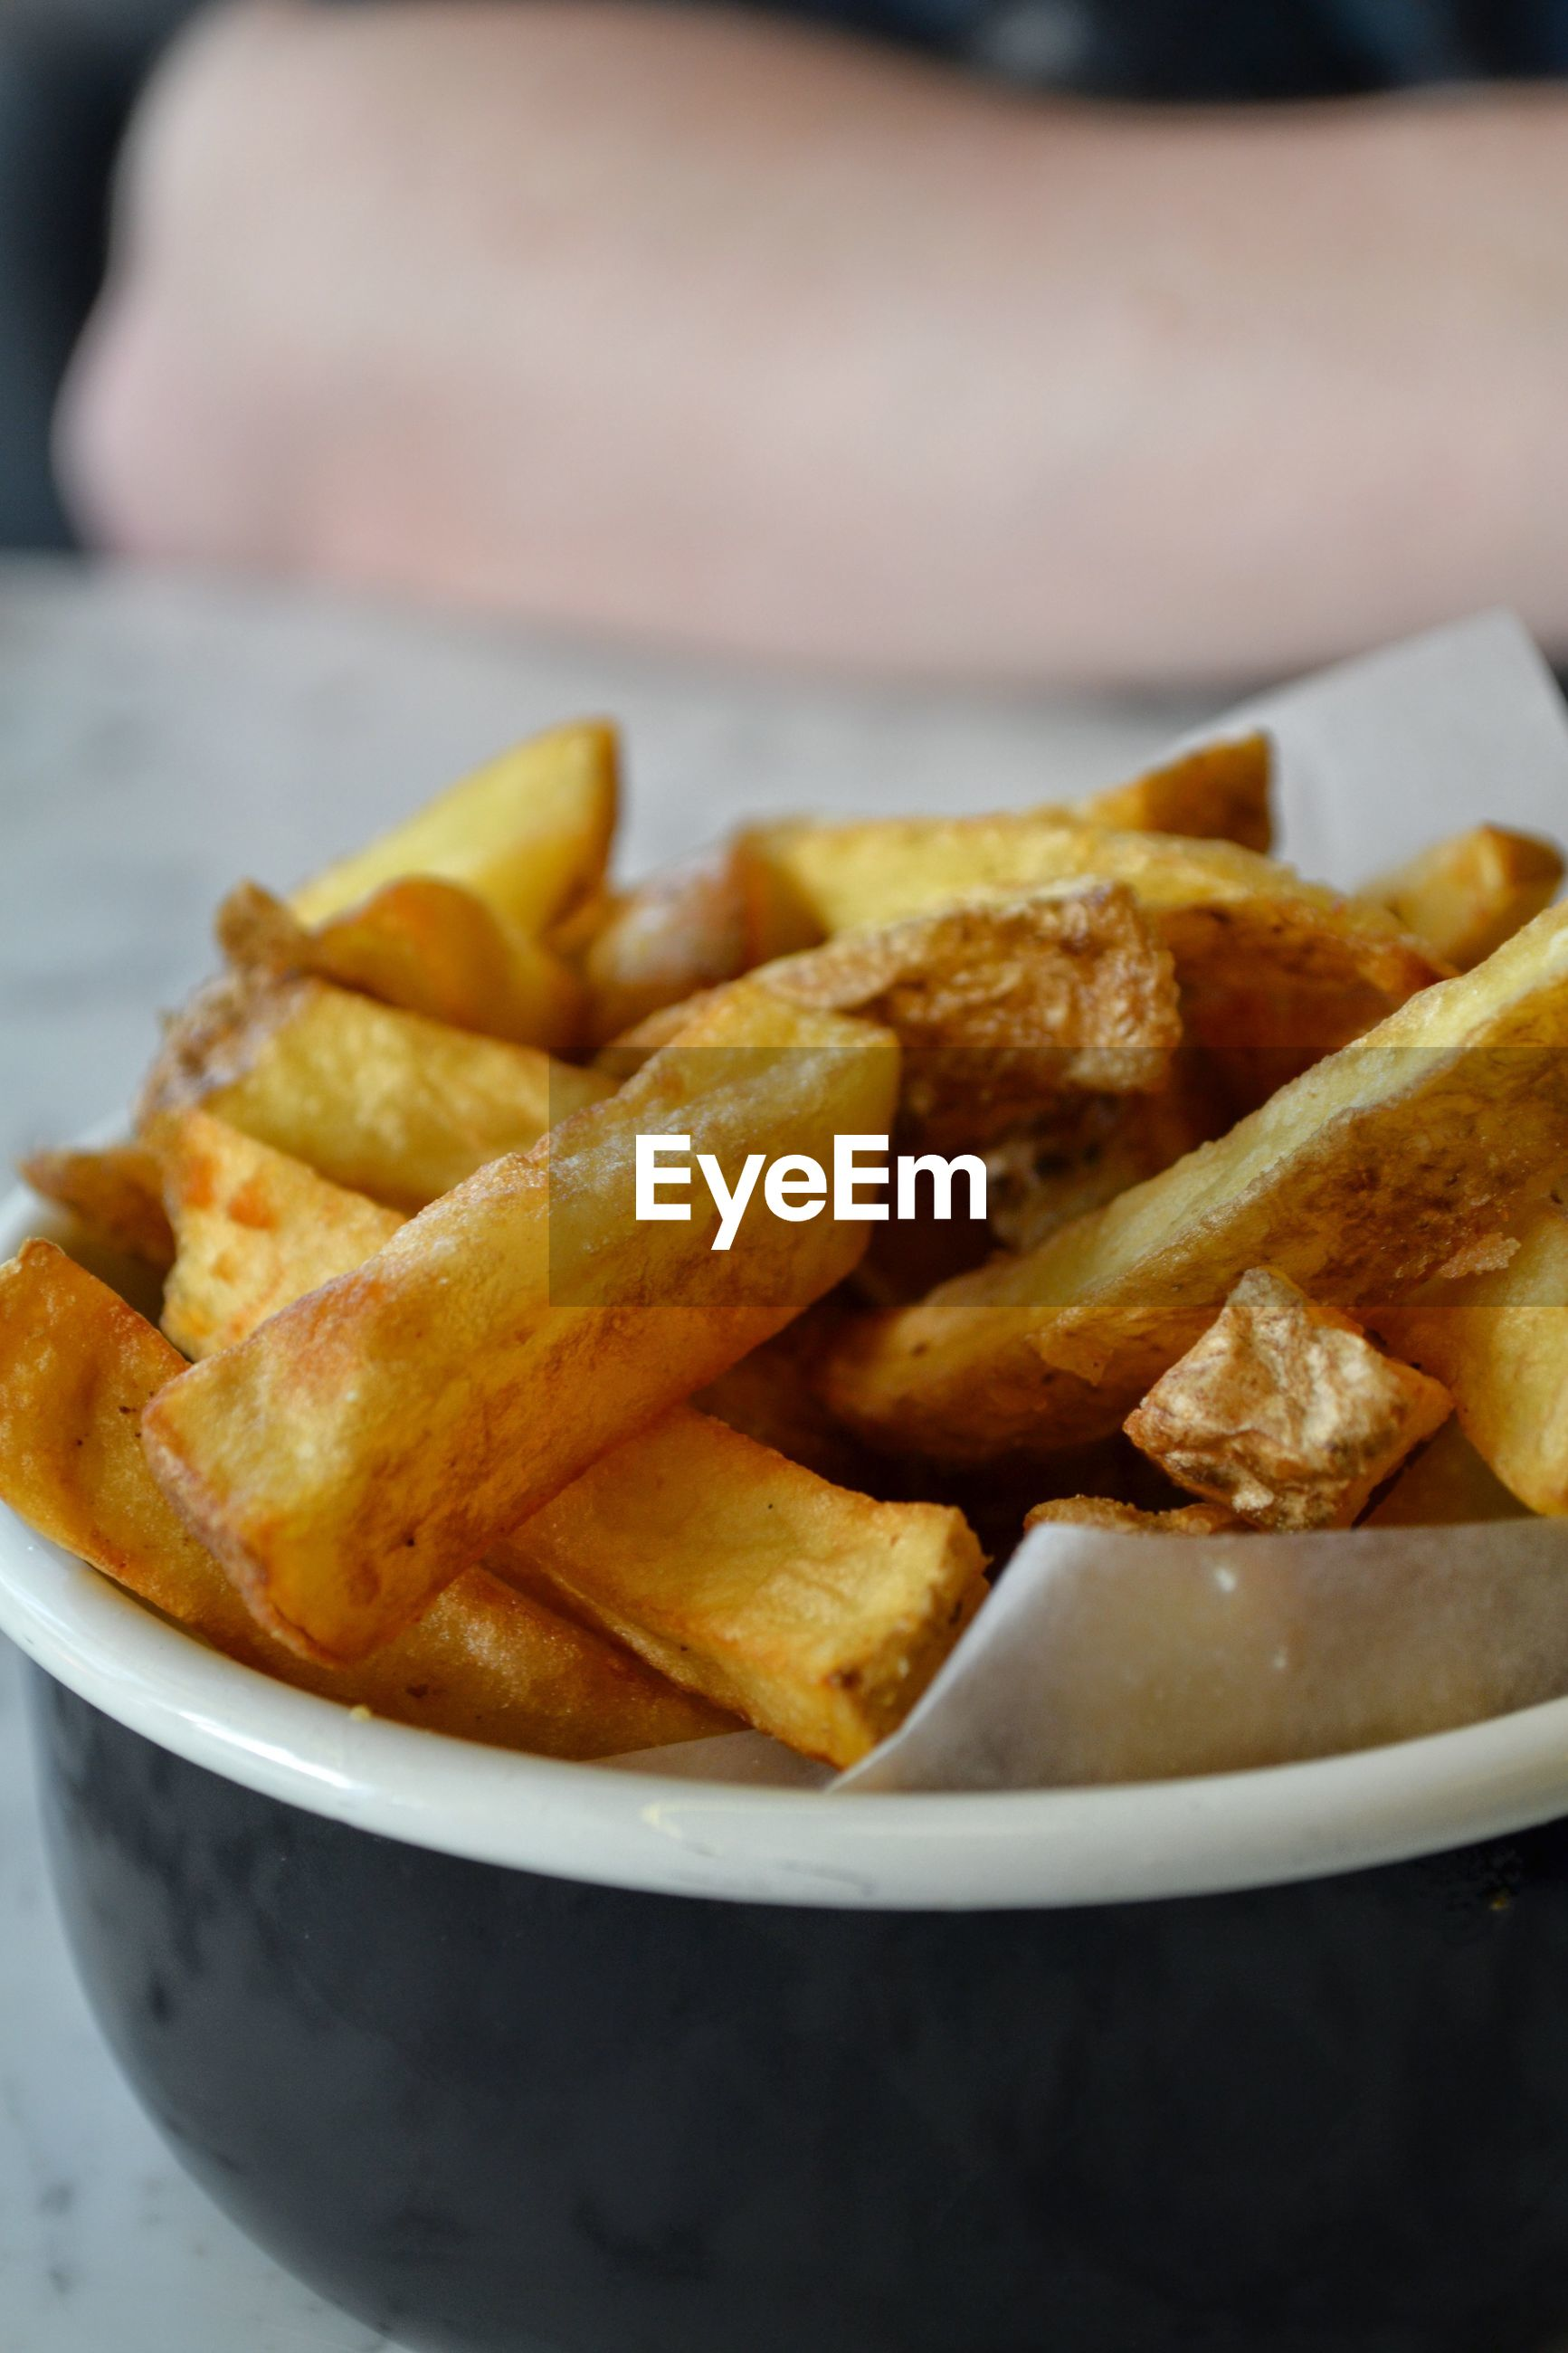 Close-up of french fries in bowl on table